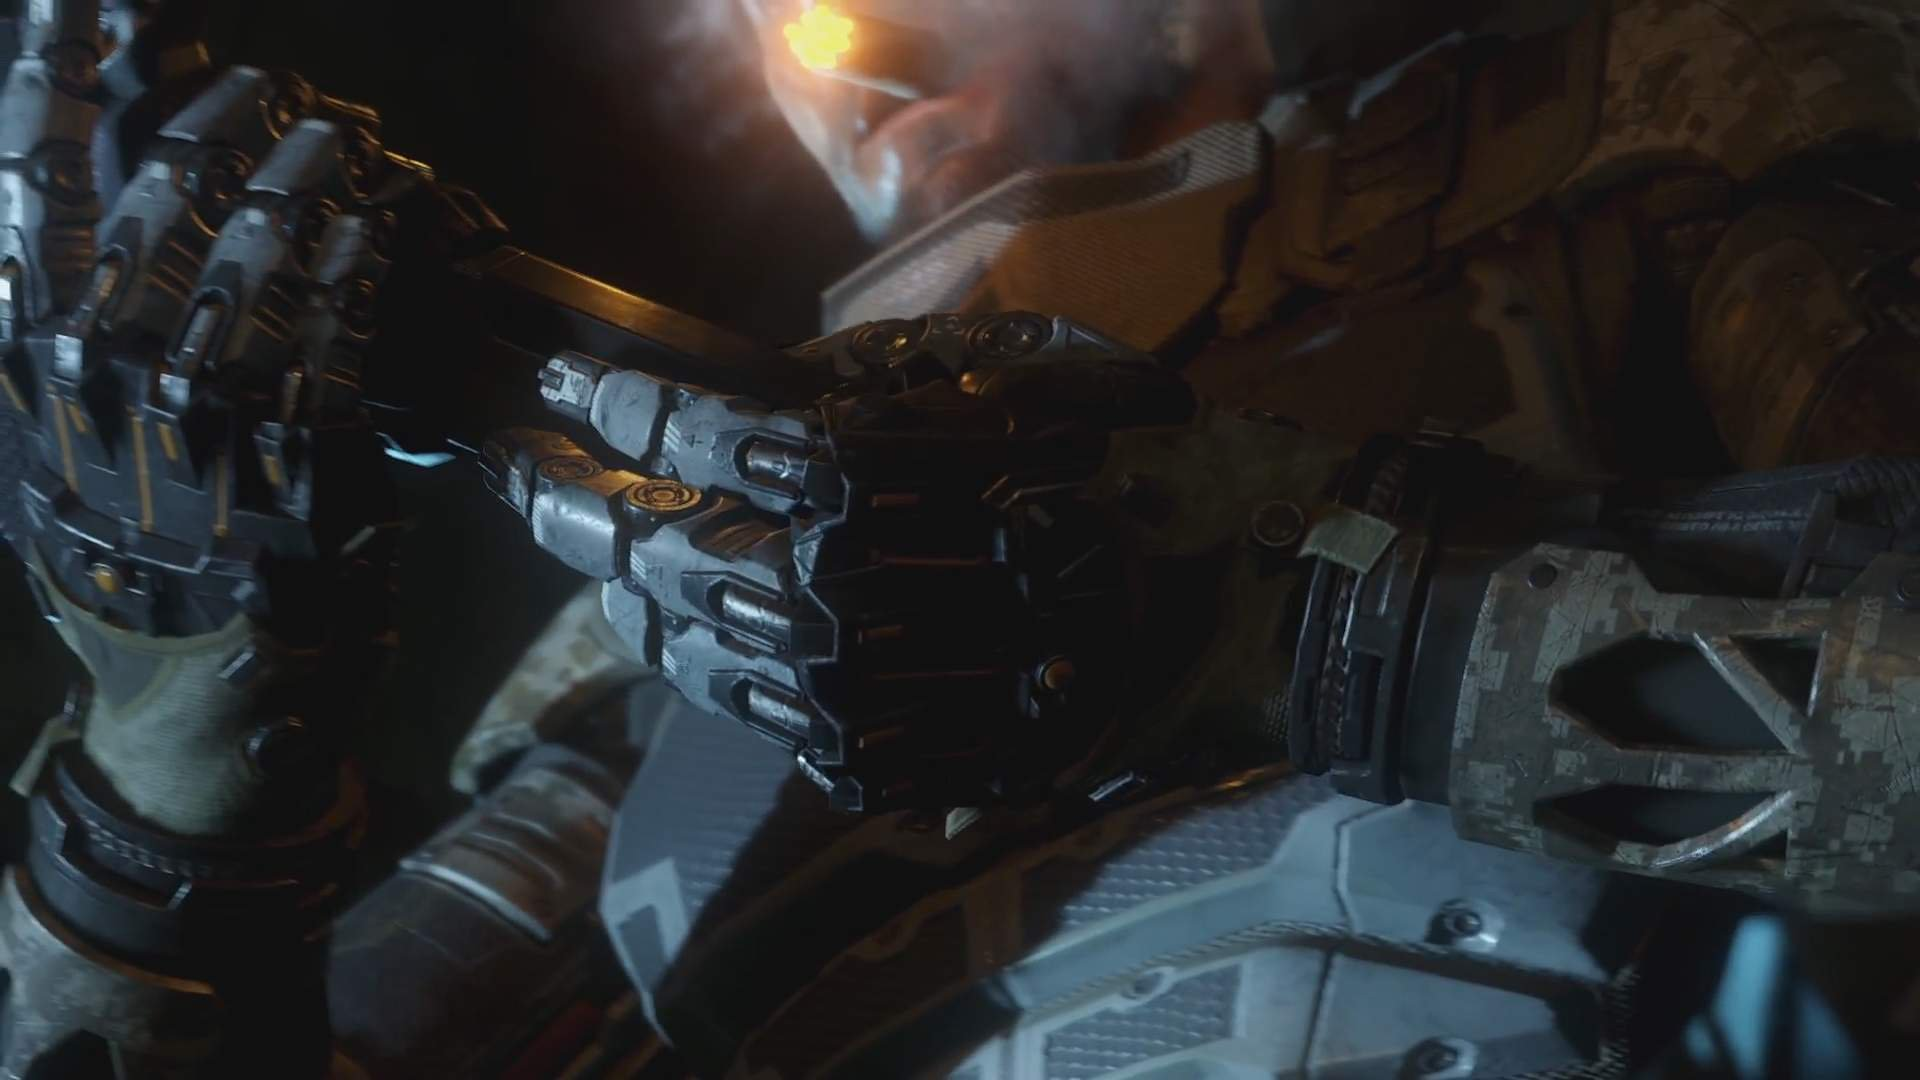 Call-of-Duty-Black-Ops-3-Story-Trailer-Feature-Image